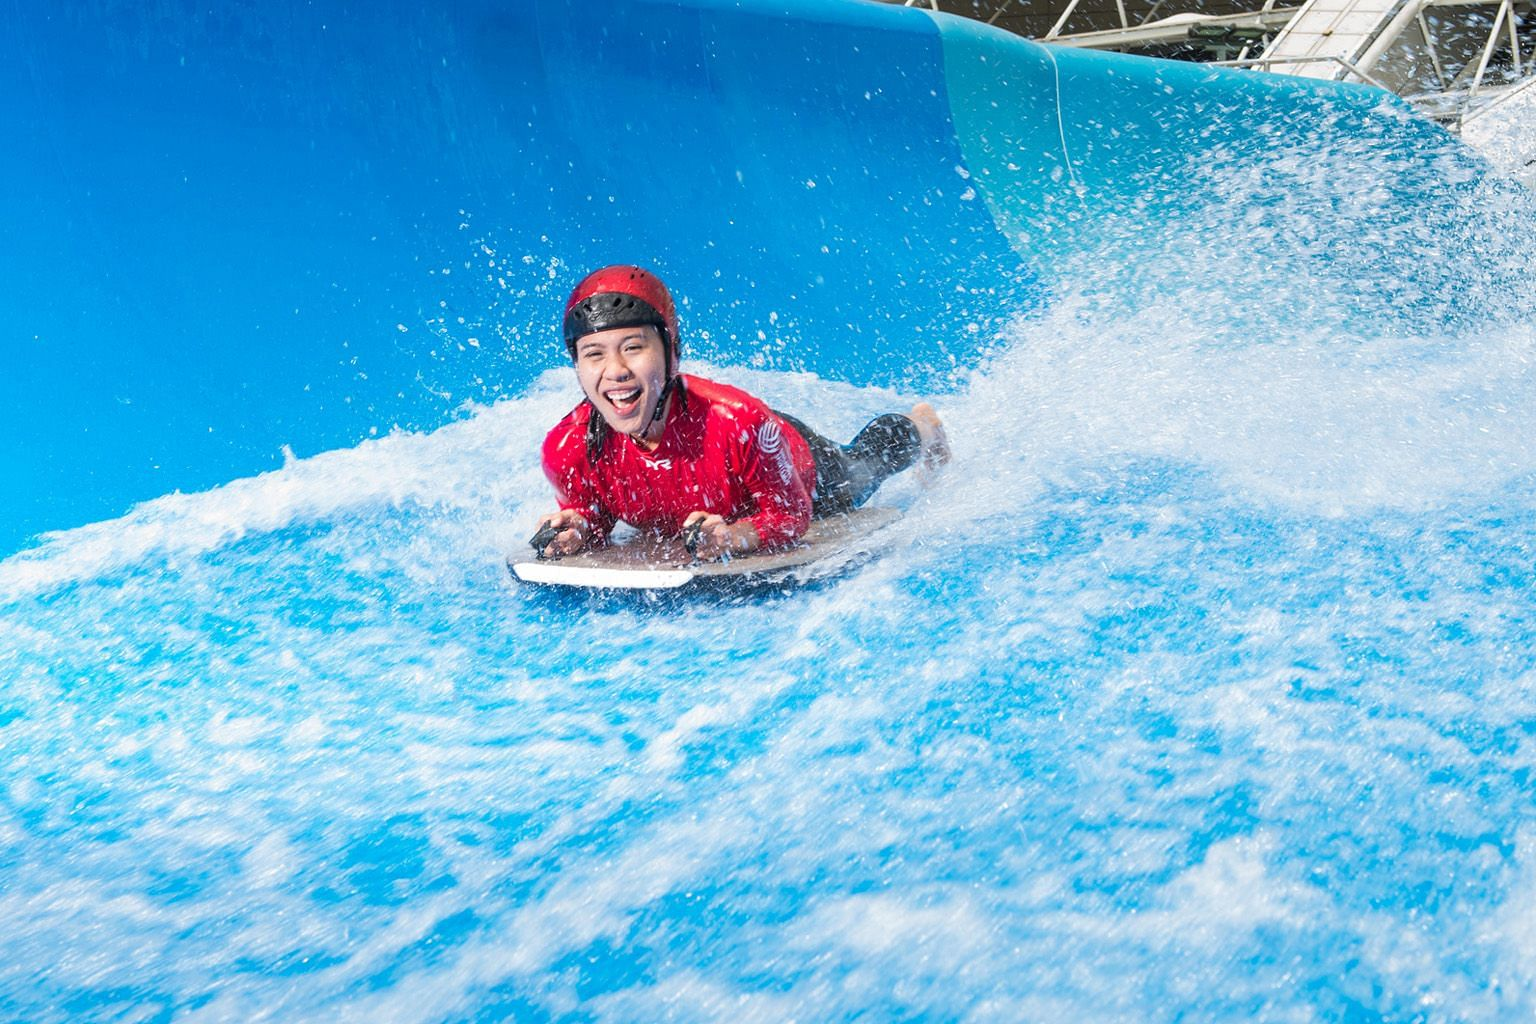 Among the 14 Play At The Hub activities that children can enjoy till June 24 is surfing on the Stingray facility at Splash-N-Surf.